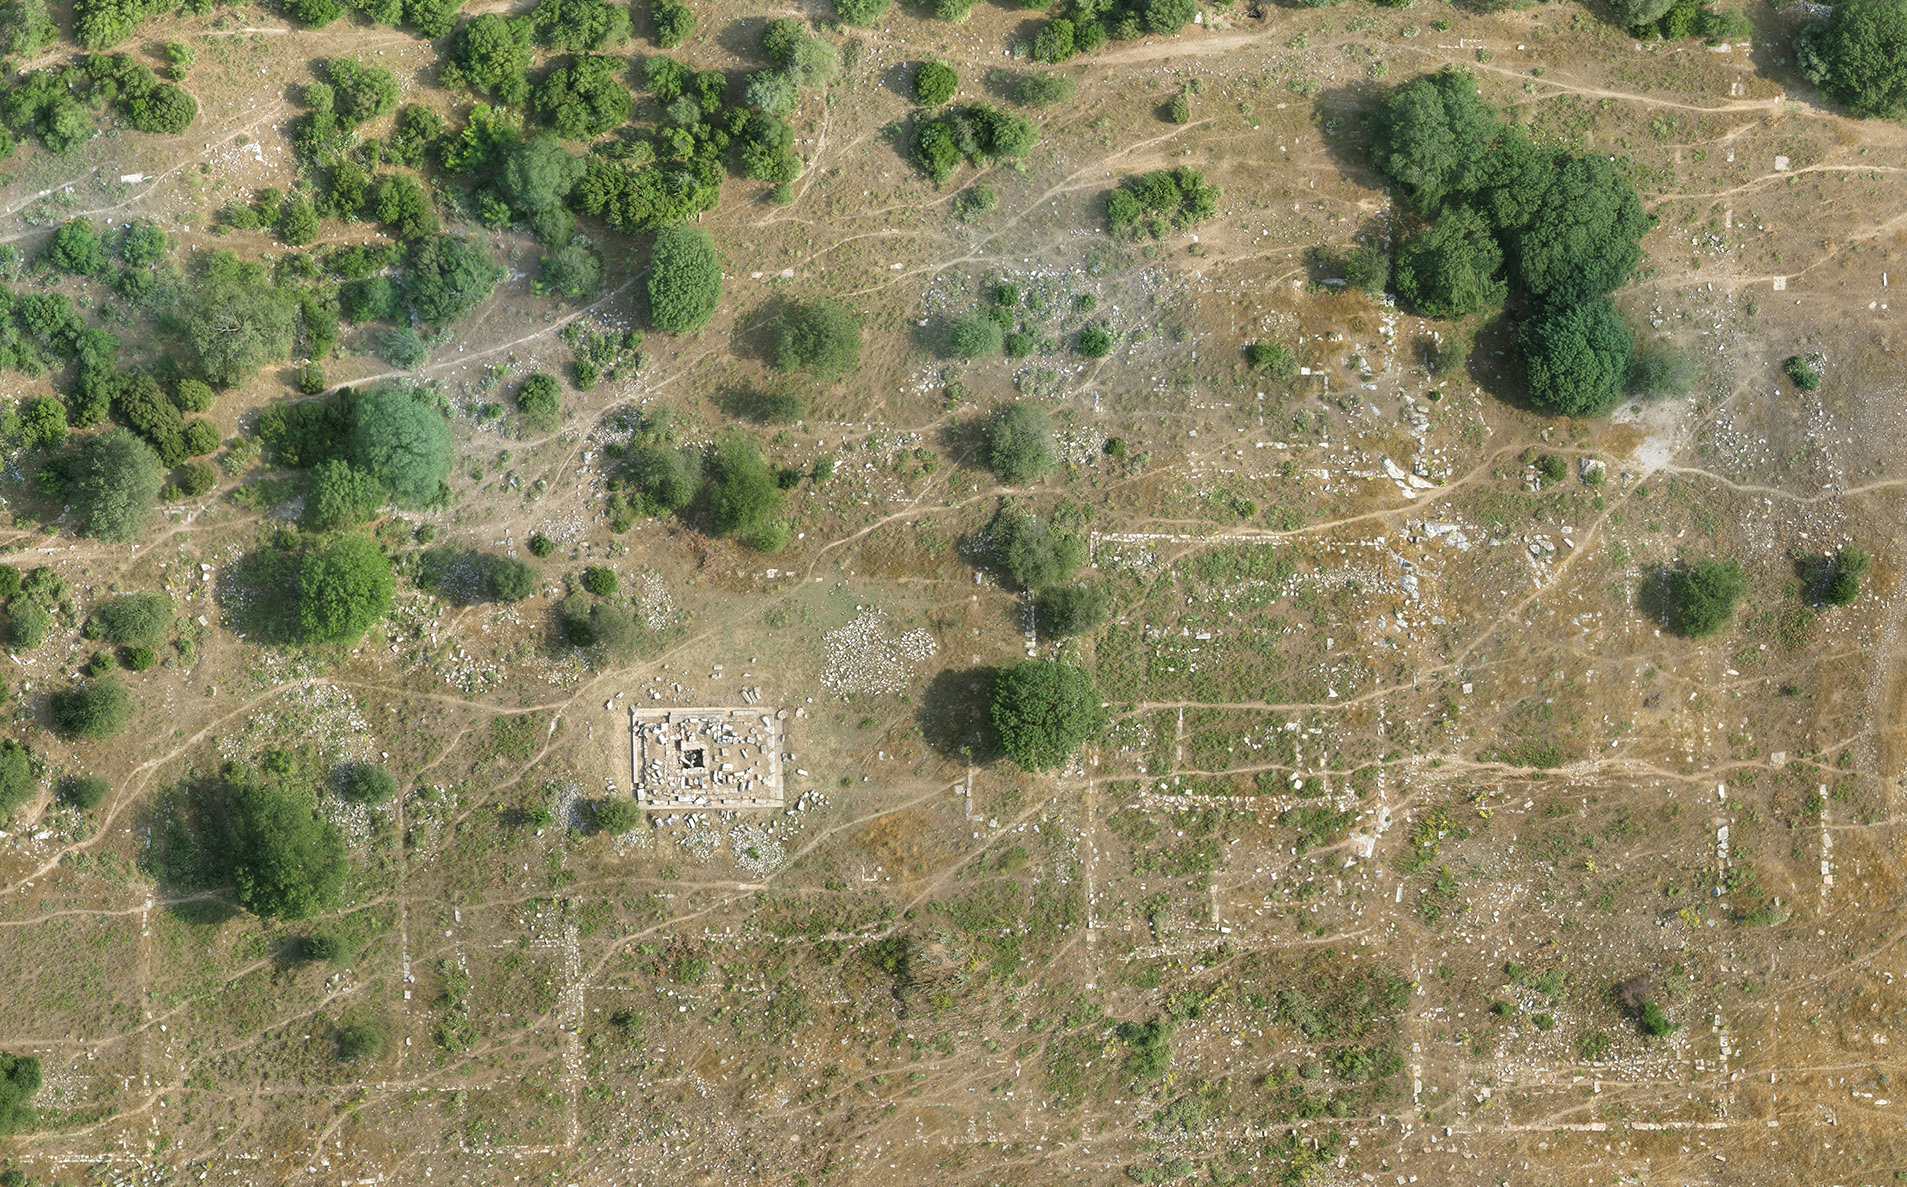 Selection from an orthorectified aerial photograph, showing the remarkable surface legibility of the site